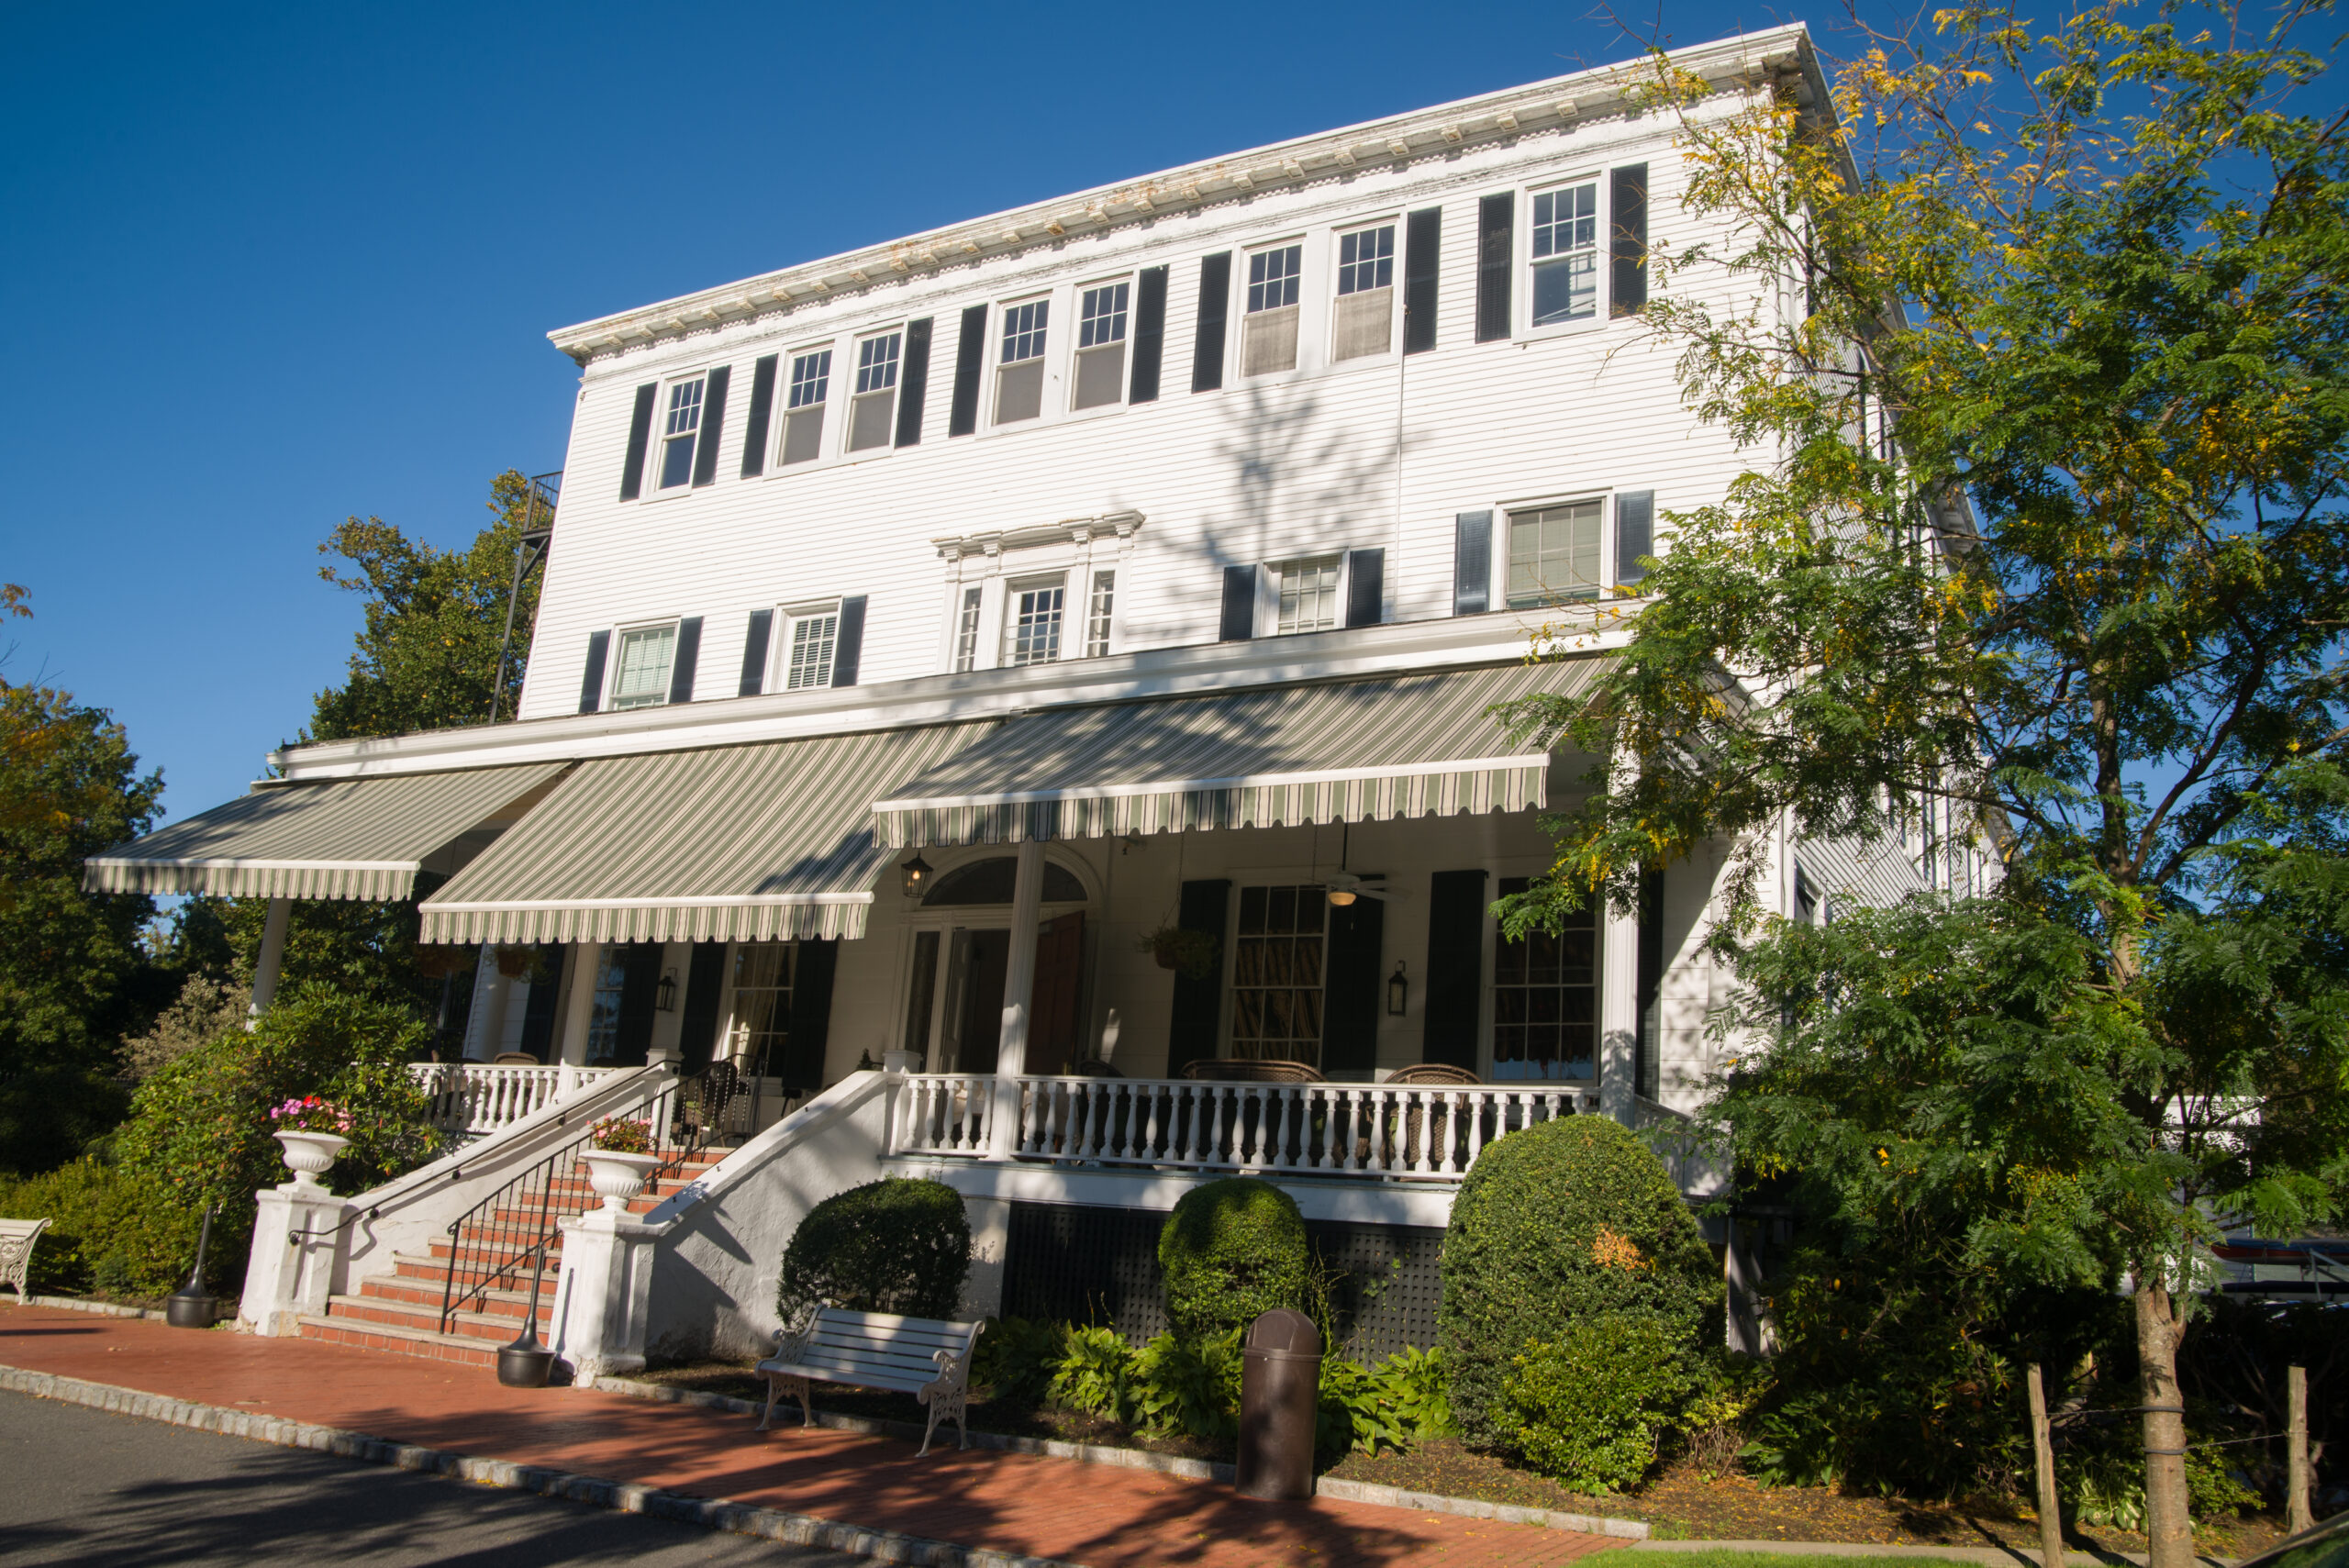 A three-story white wood home with green striped awnings over a large brick porch.